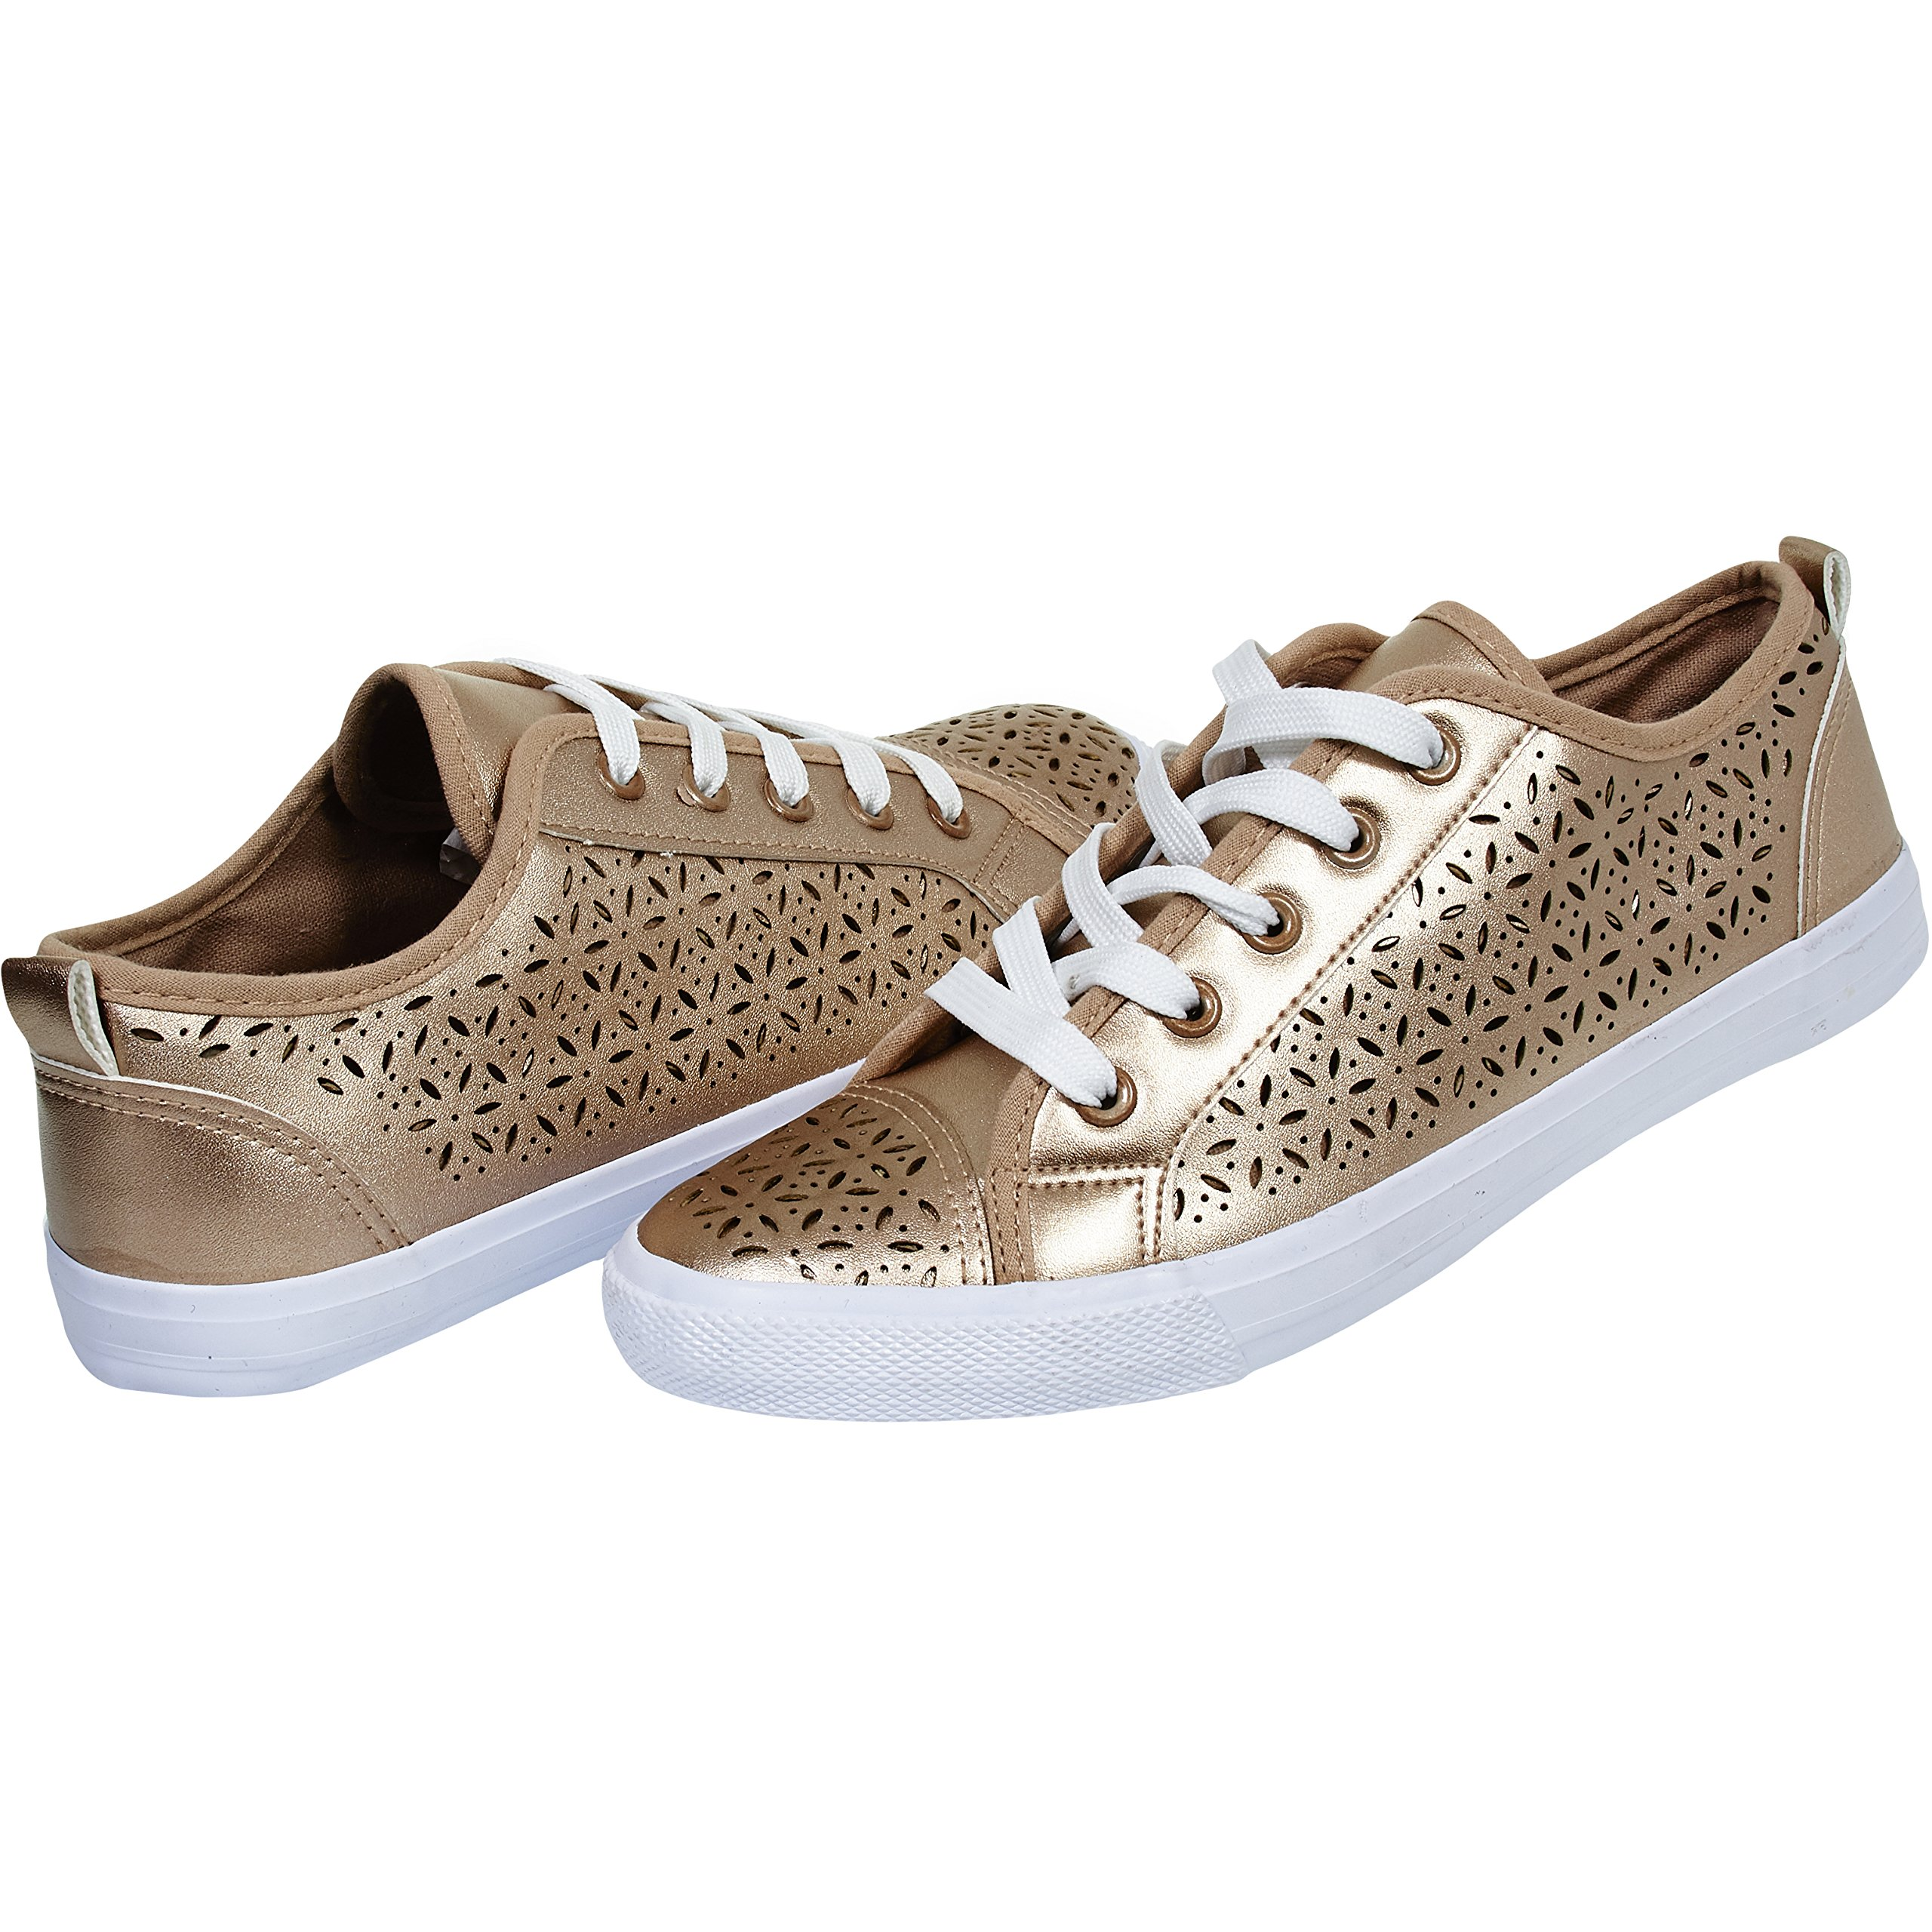 Chatties By Sara Z Womens Perforated Fashion Sneakers Tie Up Slip On With Laces For Ladies Size 7/8 Rose Gold